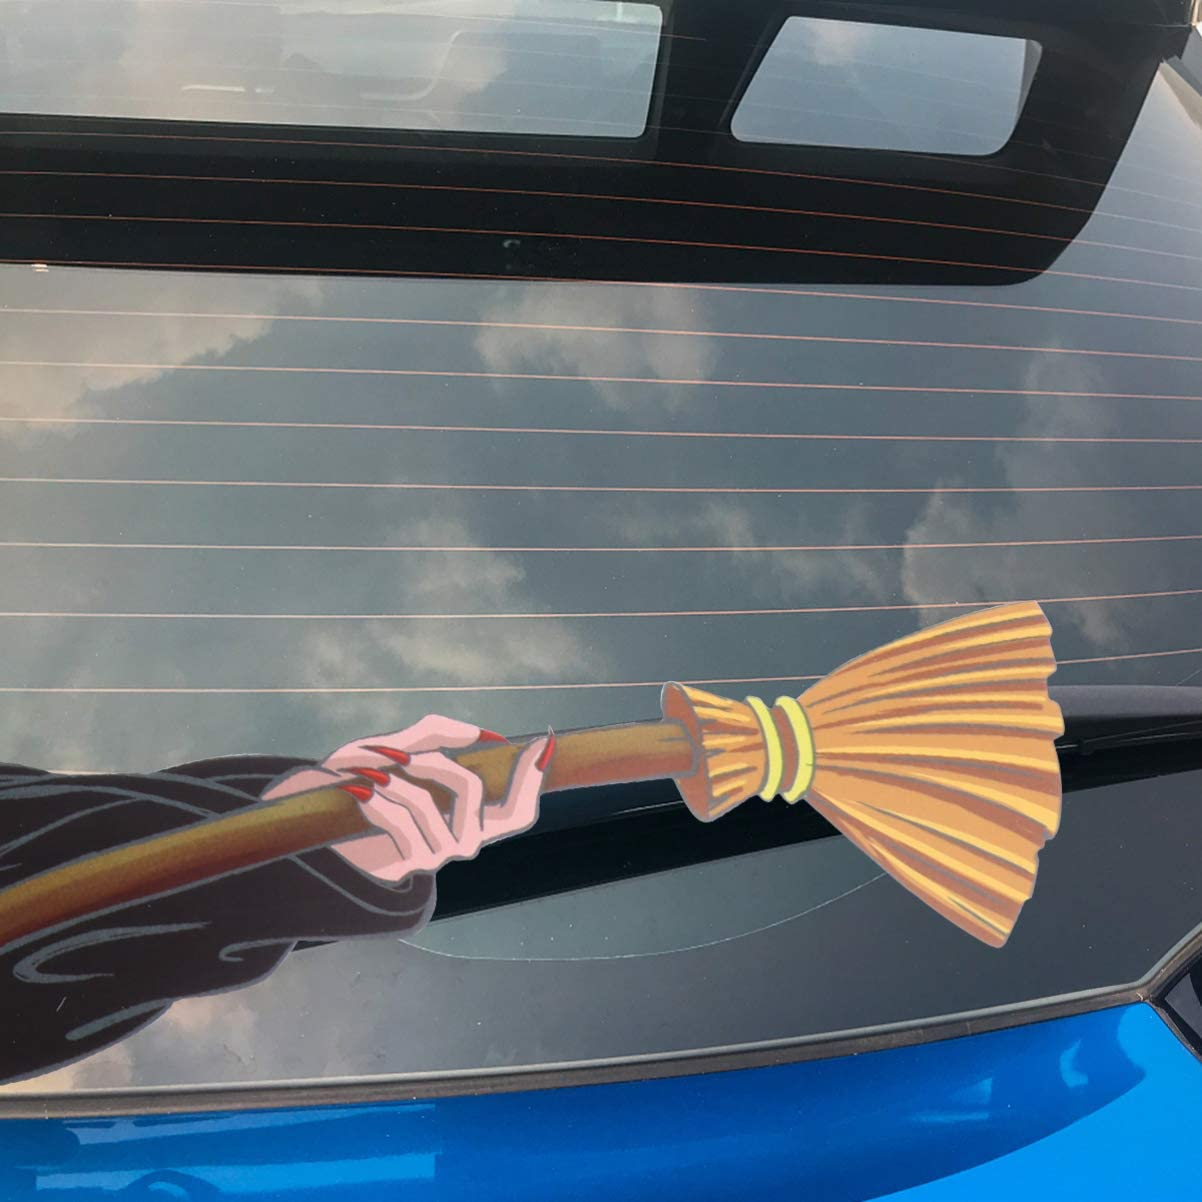 VOSAREA Rear Window Wiper Decal Halloween Horror Witch Waving Wiper Arms 3d Funny Cartoon Festive for Car Bumper Windshield Wiper Decal for Rear Wipers Decor